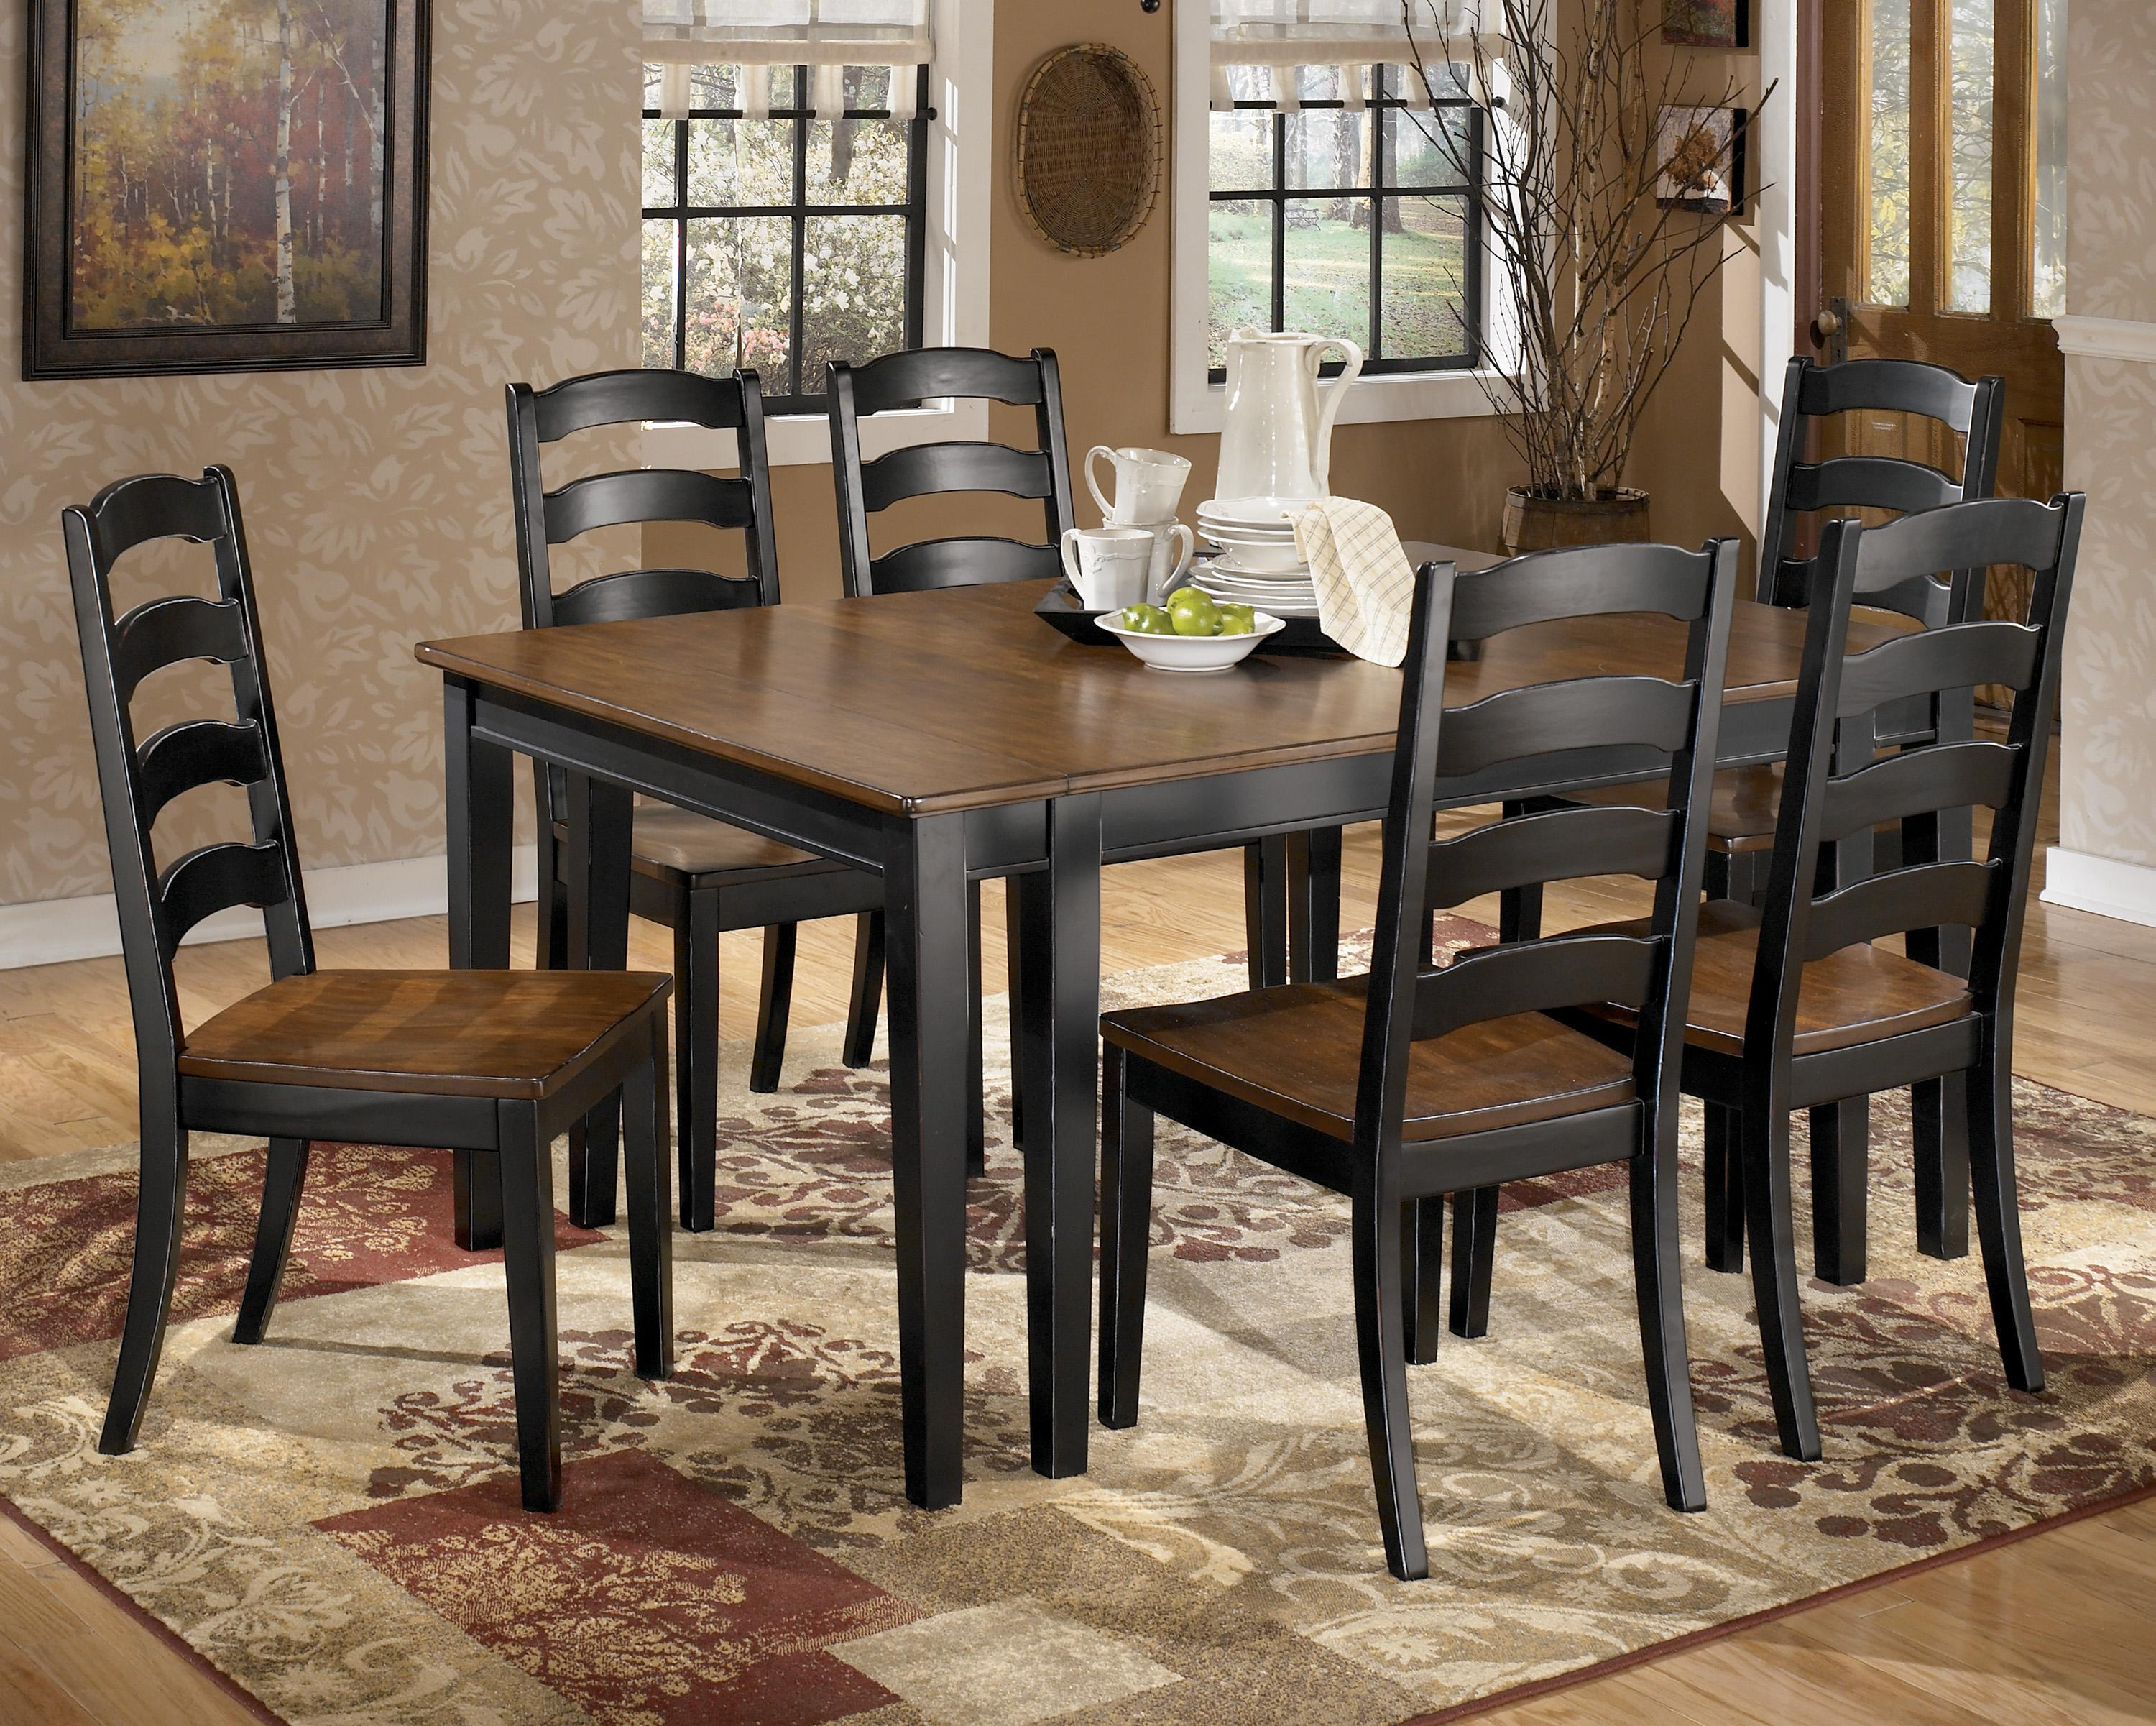 Dining room sets target homesfeed - Dining room sets ...